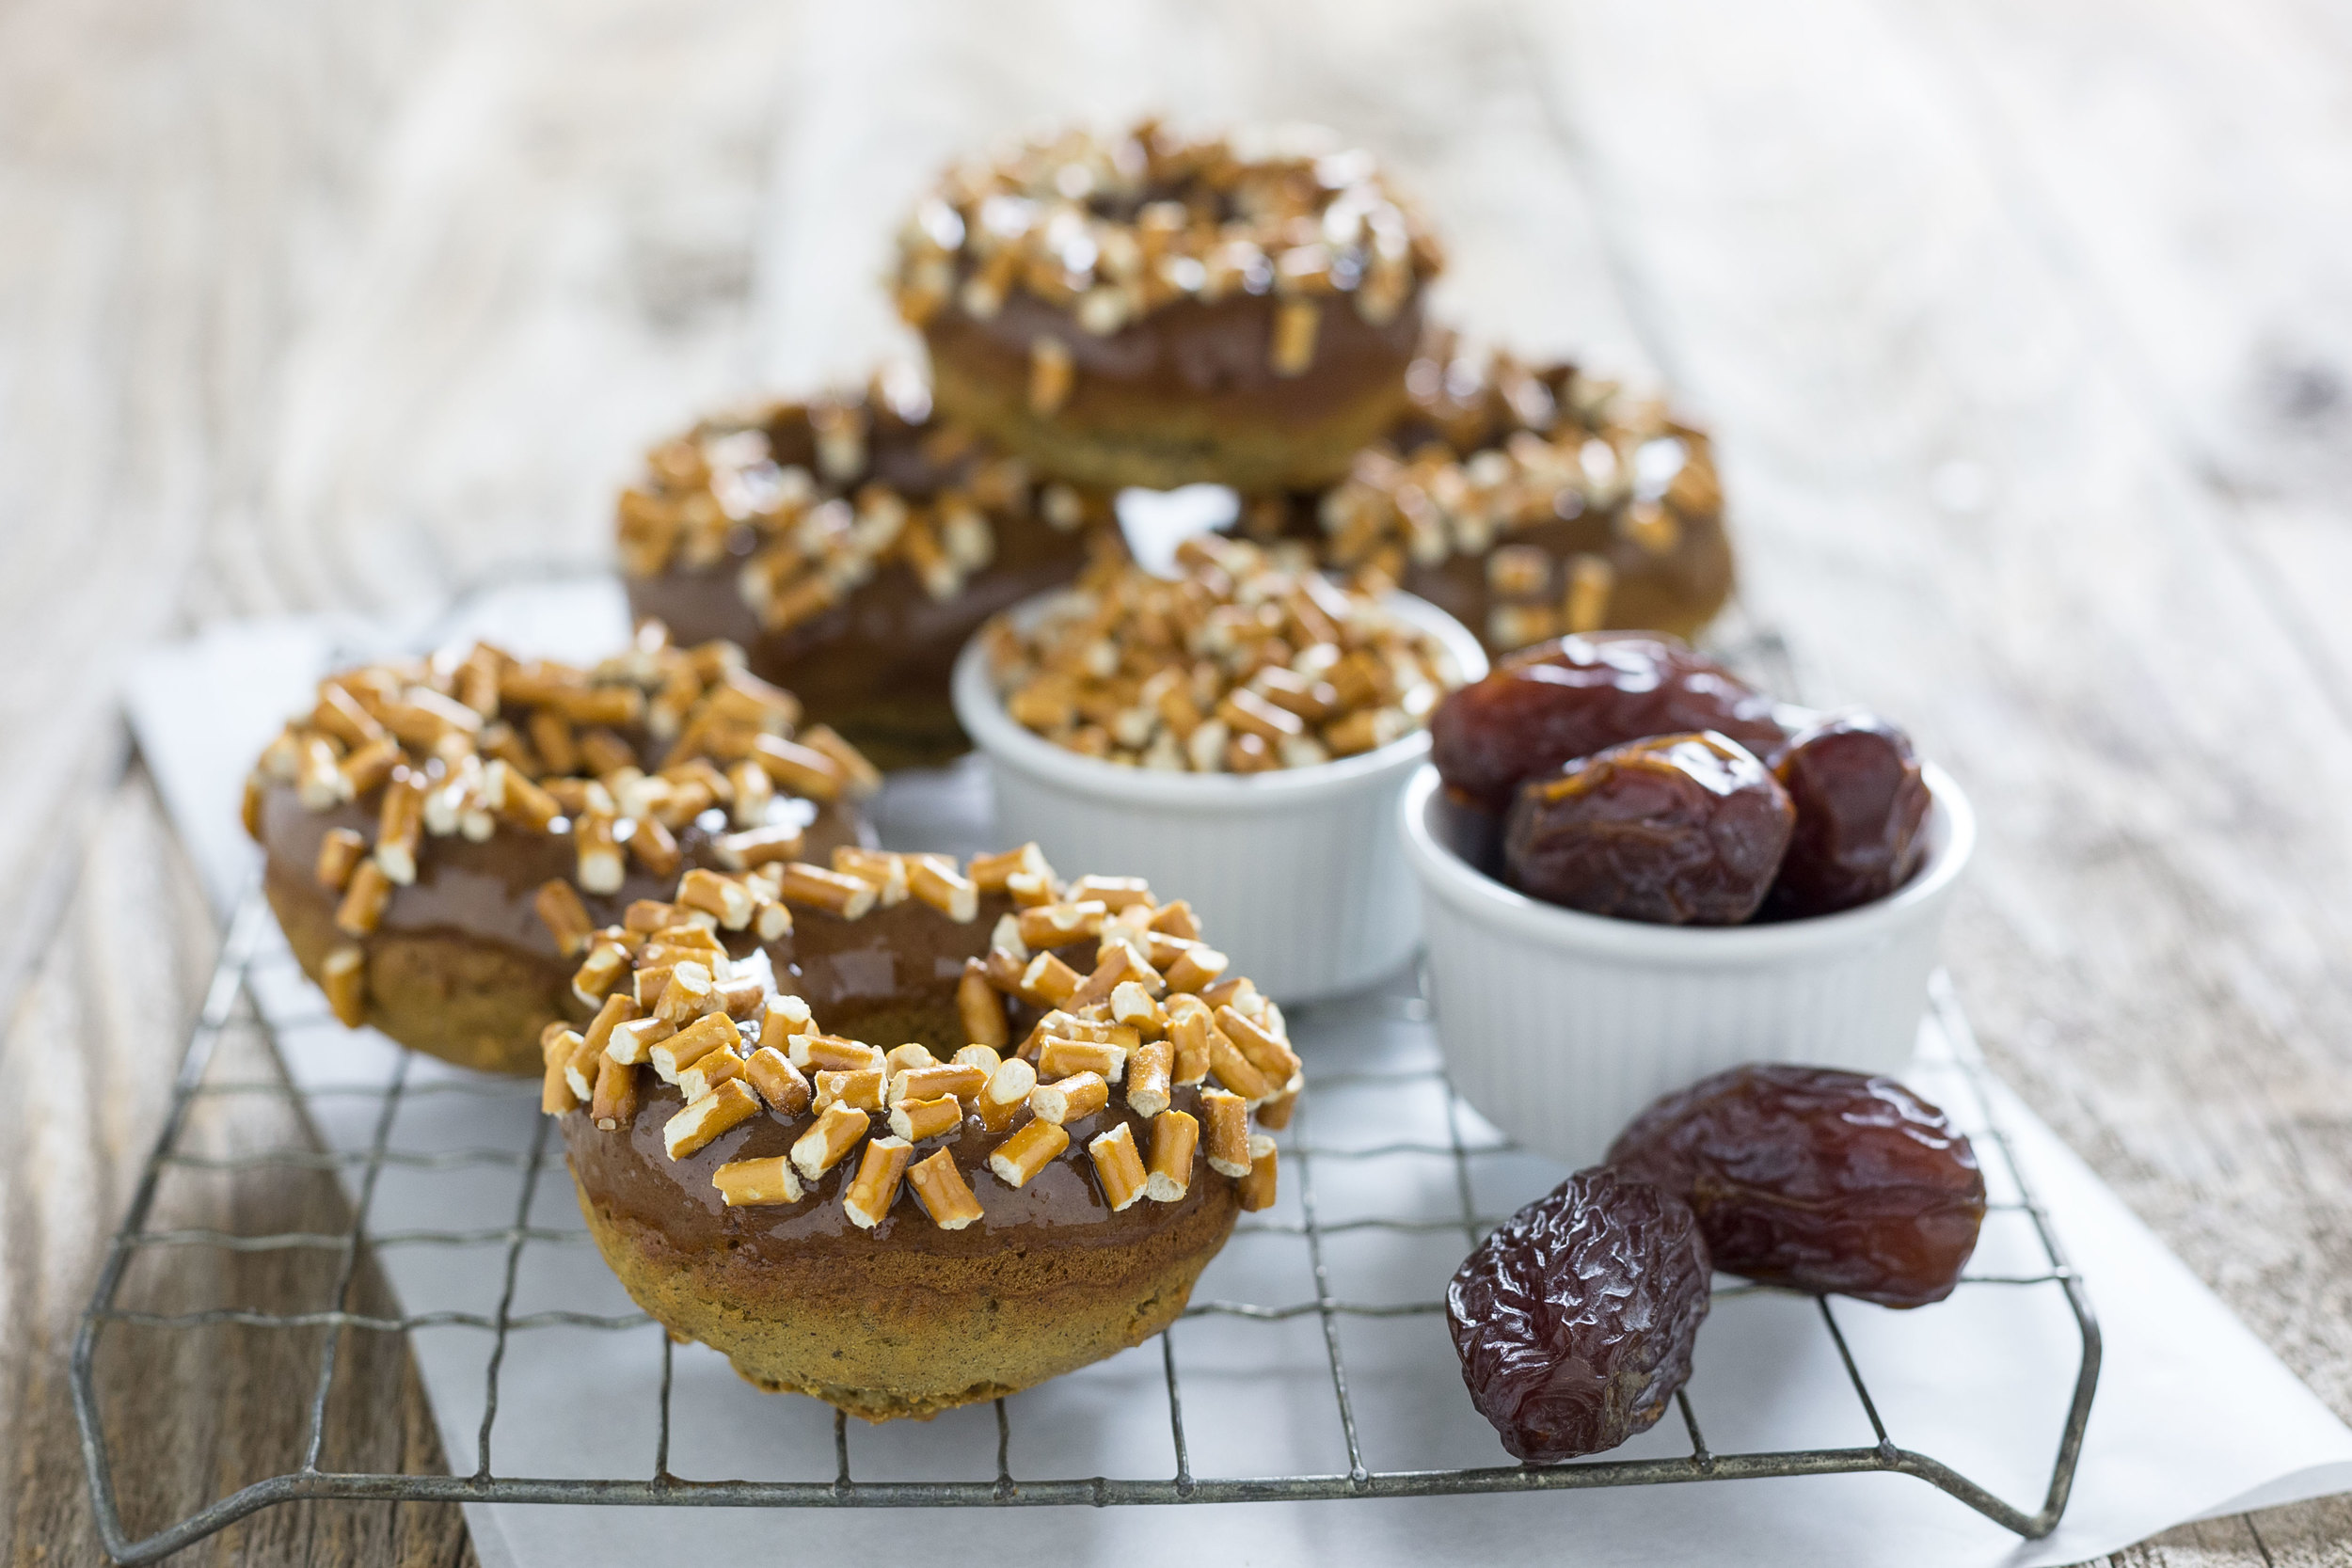 Plain Donuts with Salted Caramel Glaze and Pretzels by Sam Henderson of Today's Nest for Natural Delights Dates